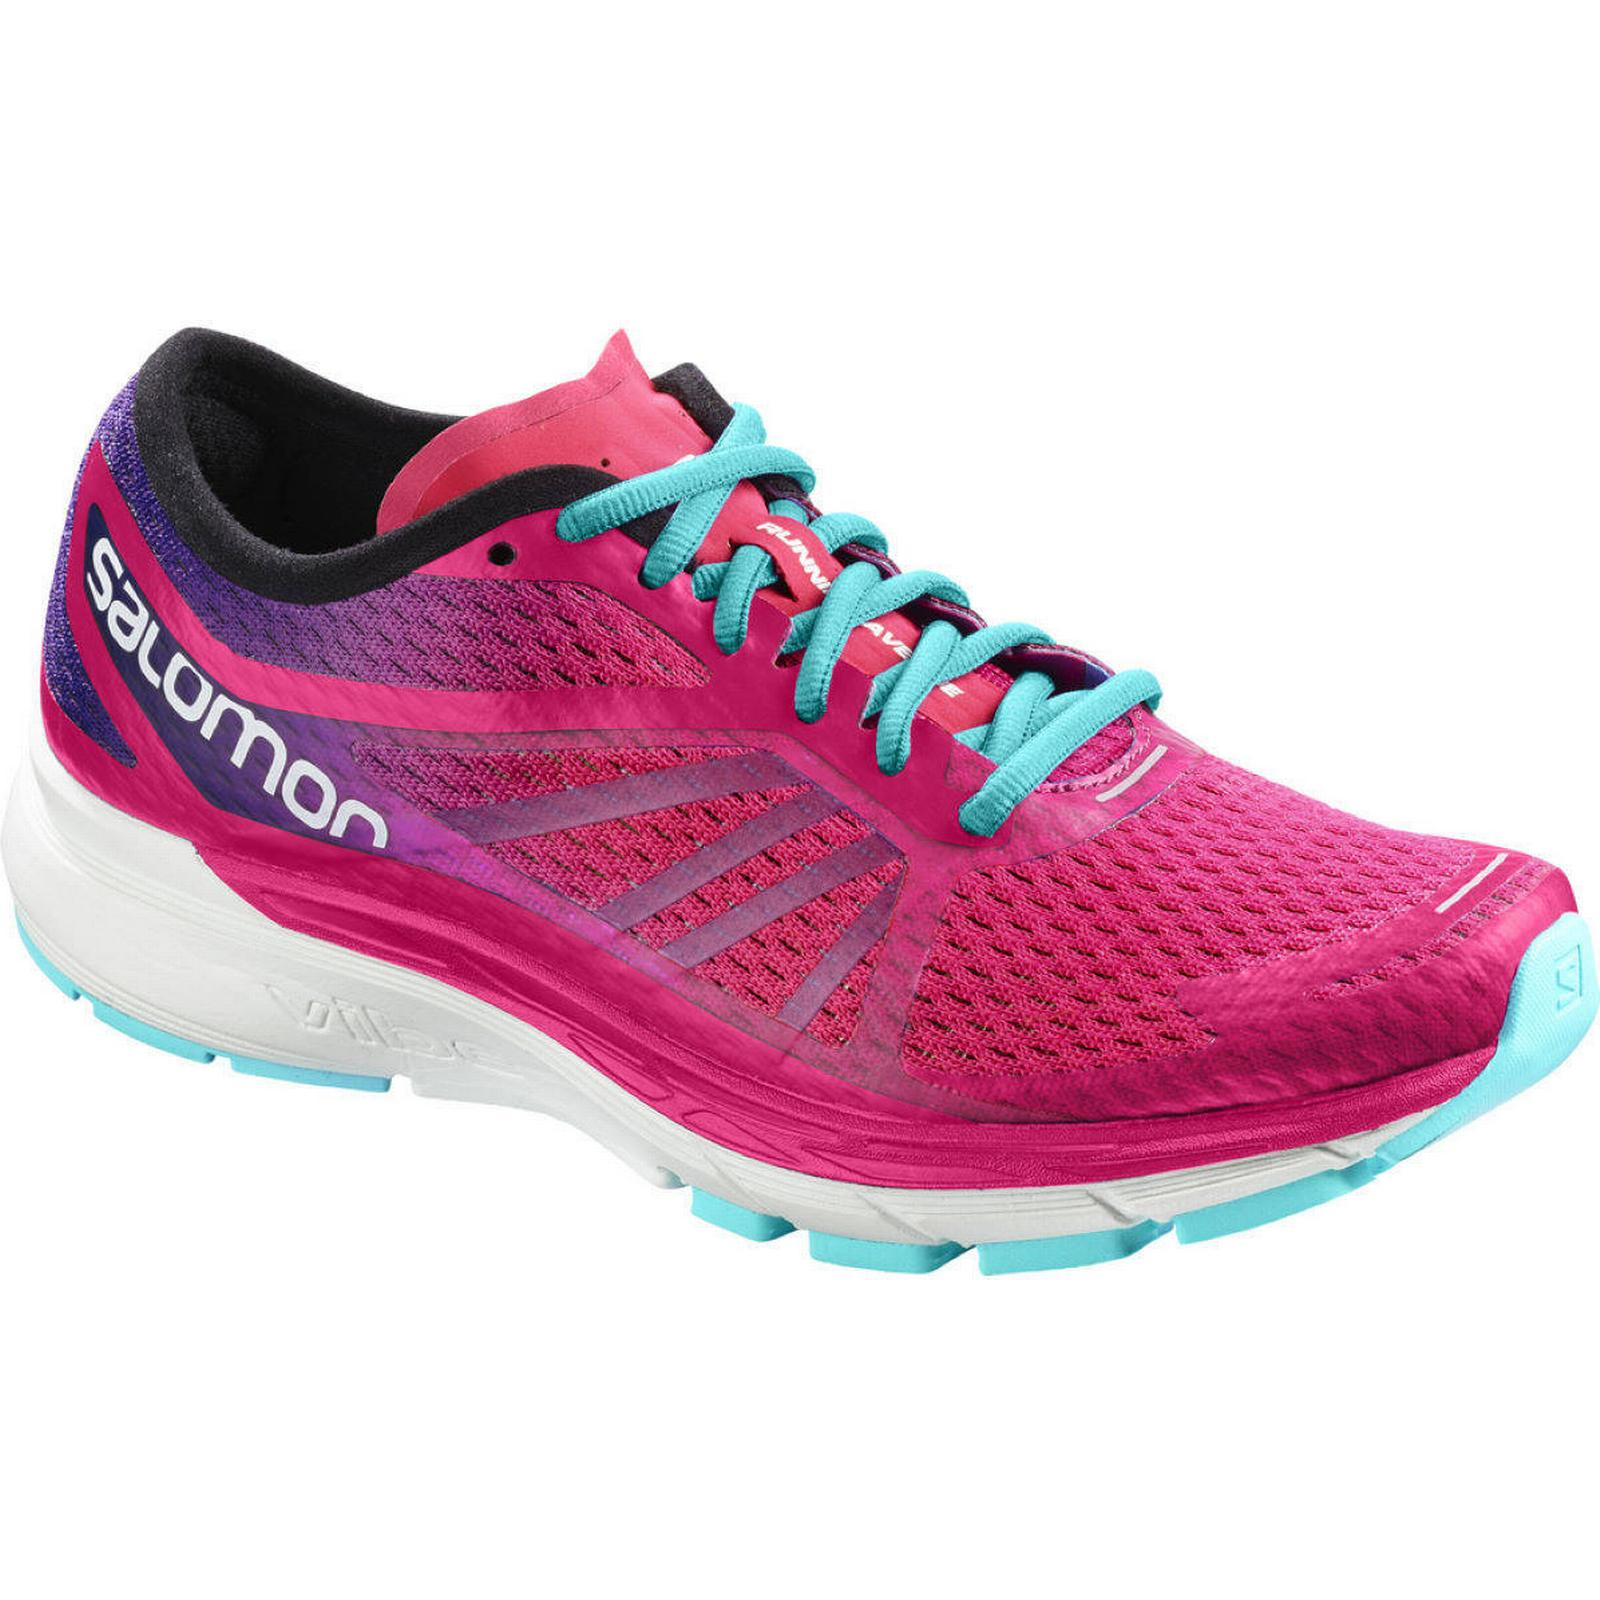 Wiggle RA Online Cycle Shop Salomon Women's Sonic RA Wiggle Pro Shoes Running Shoes 68deb9